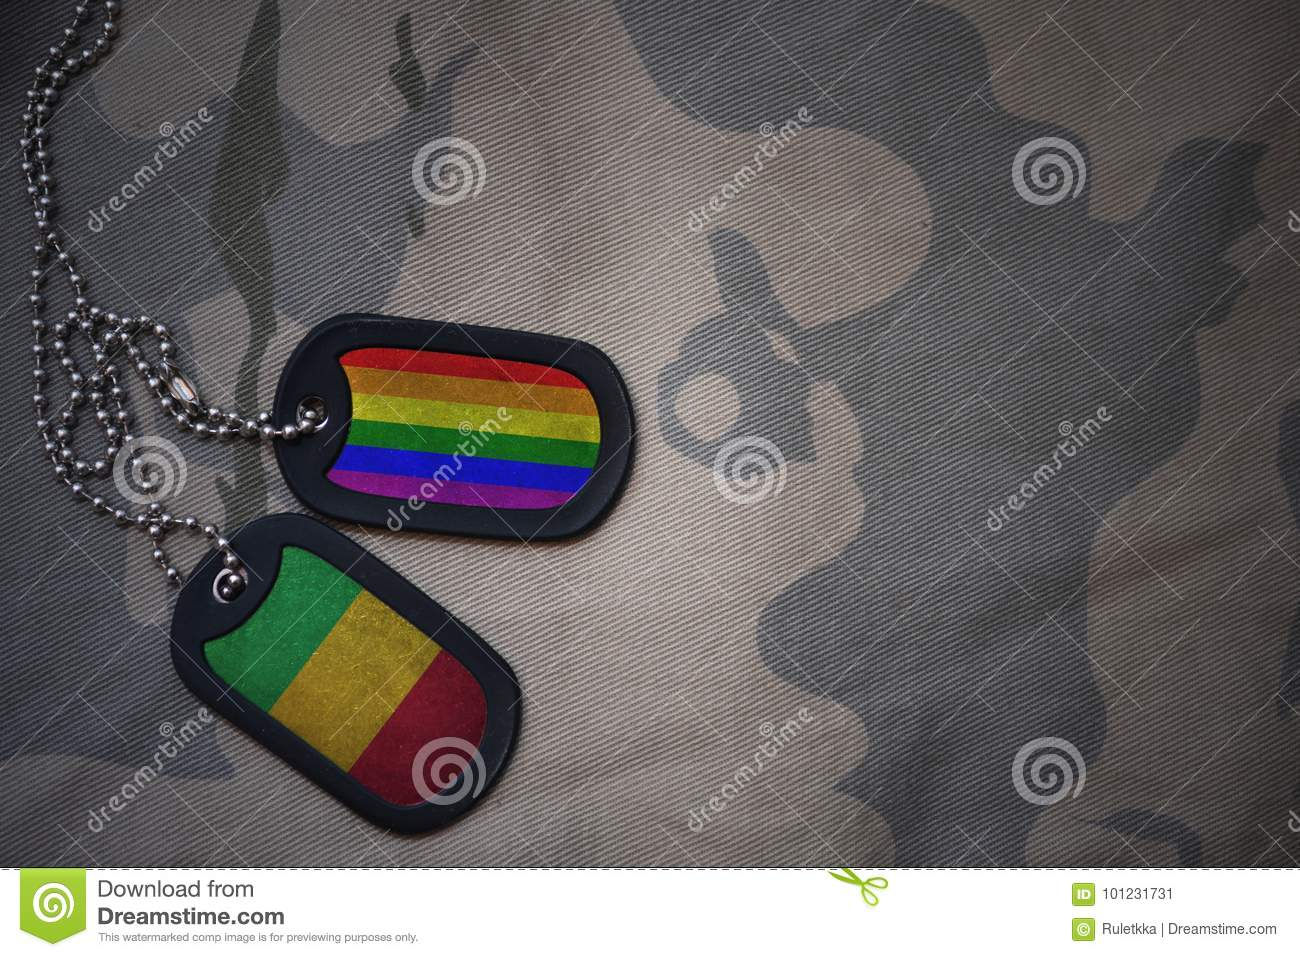 hight resolution of army blank dog tag with flag of mali and gay rainbow flag on the khaki